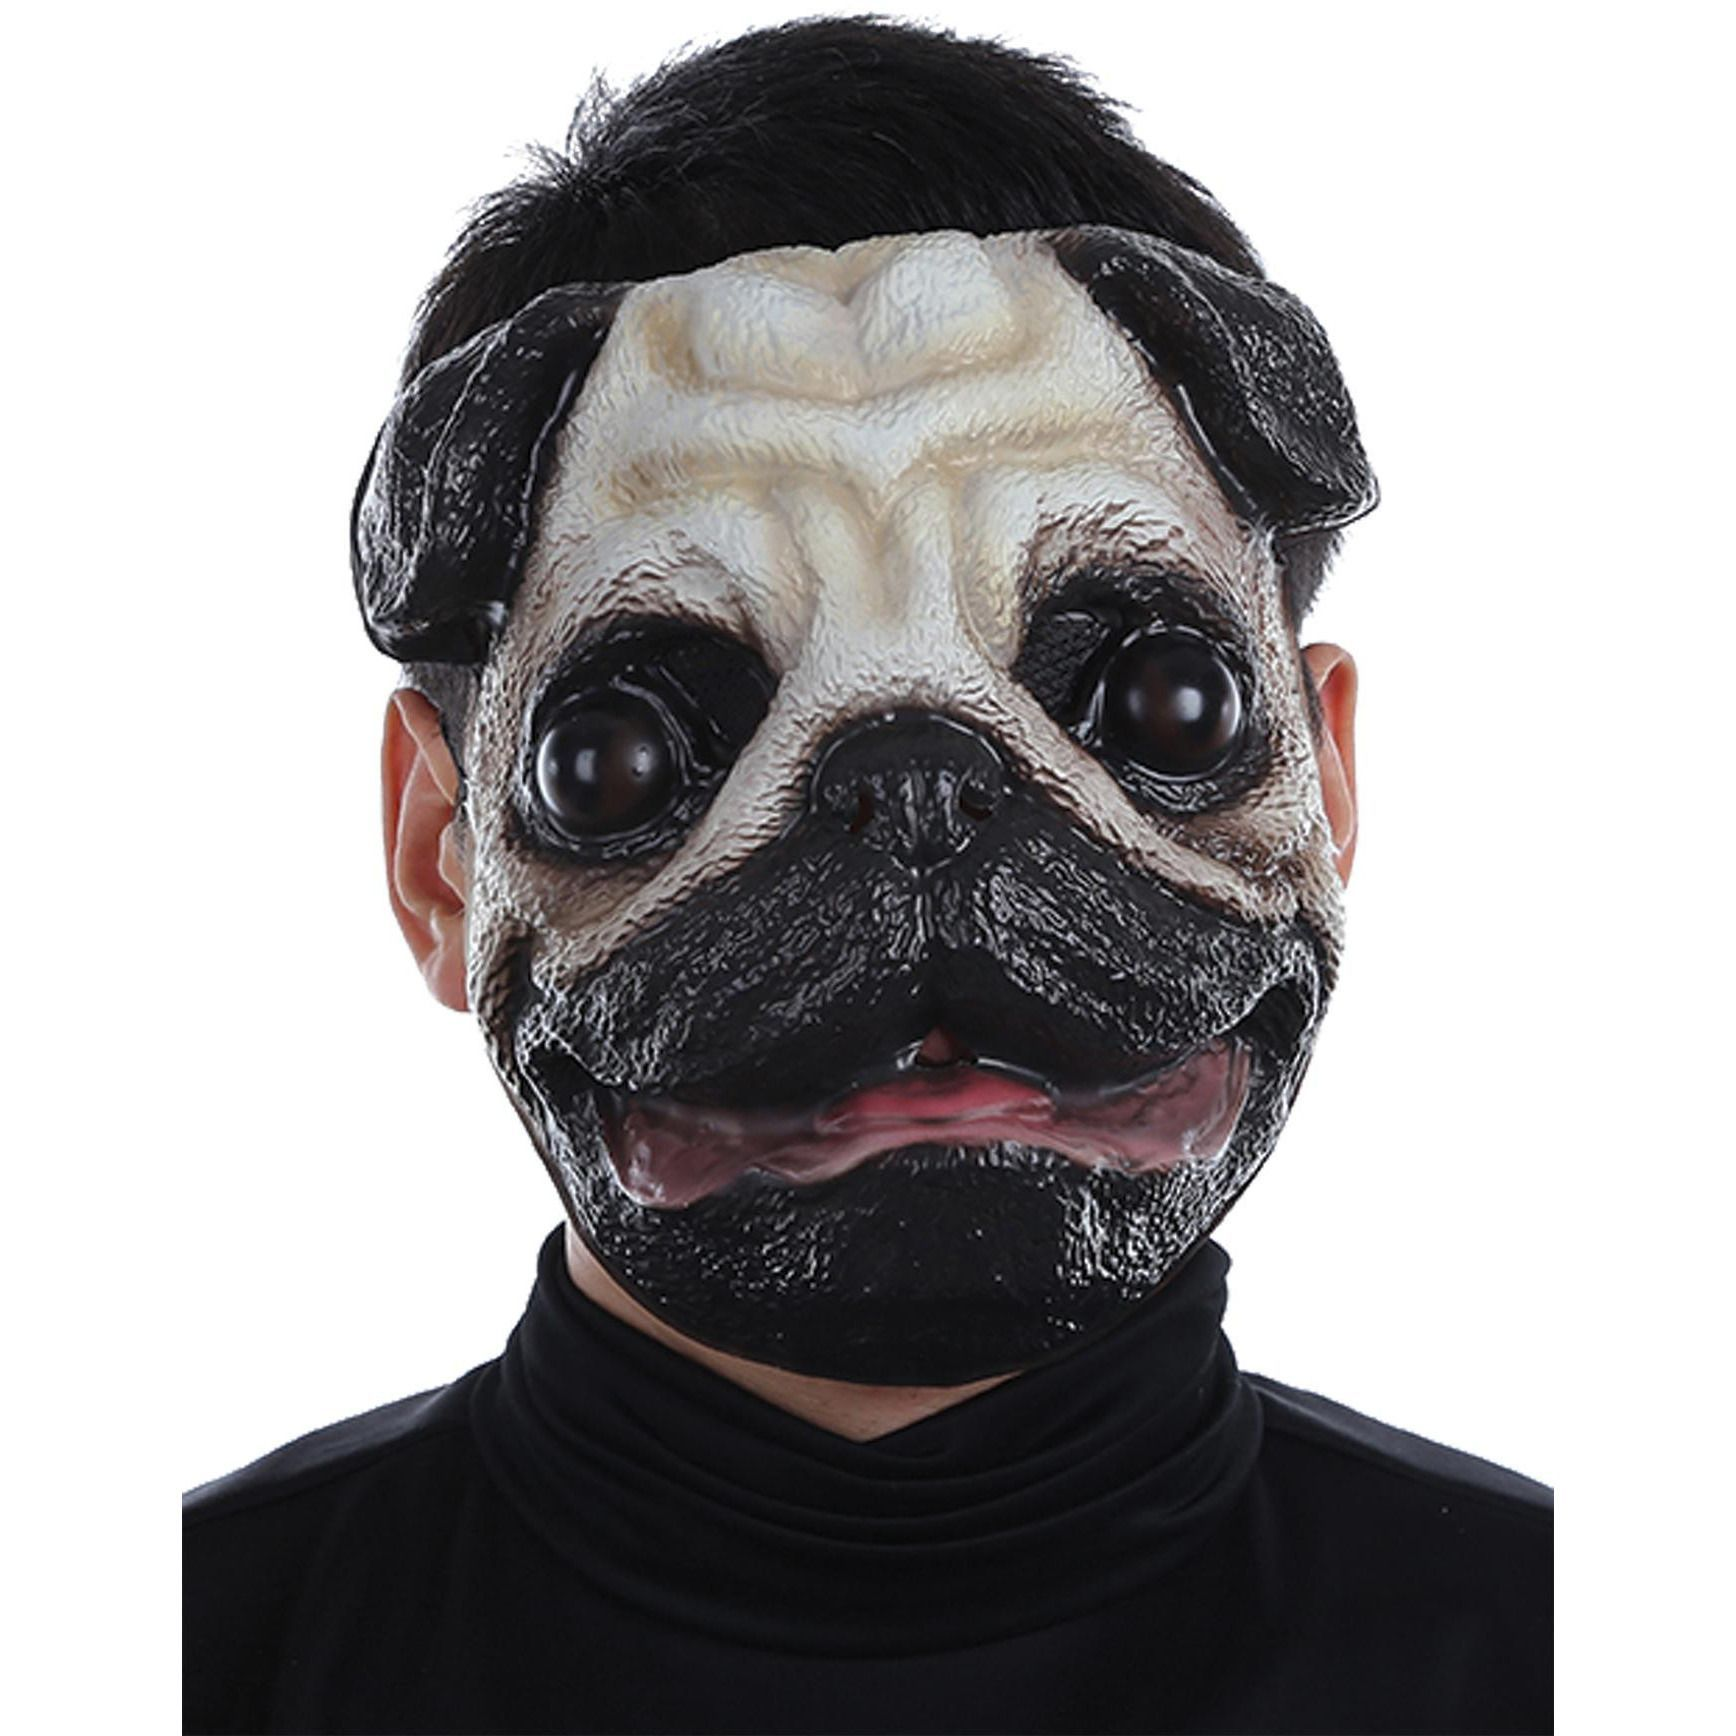 Plastic Face Masks Pug Dog Mask Pug Mask Animal Masks